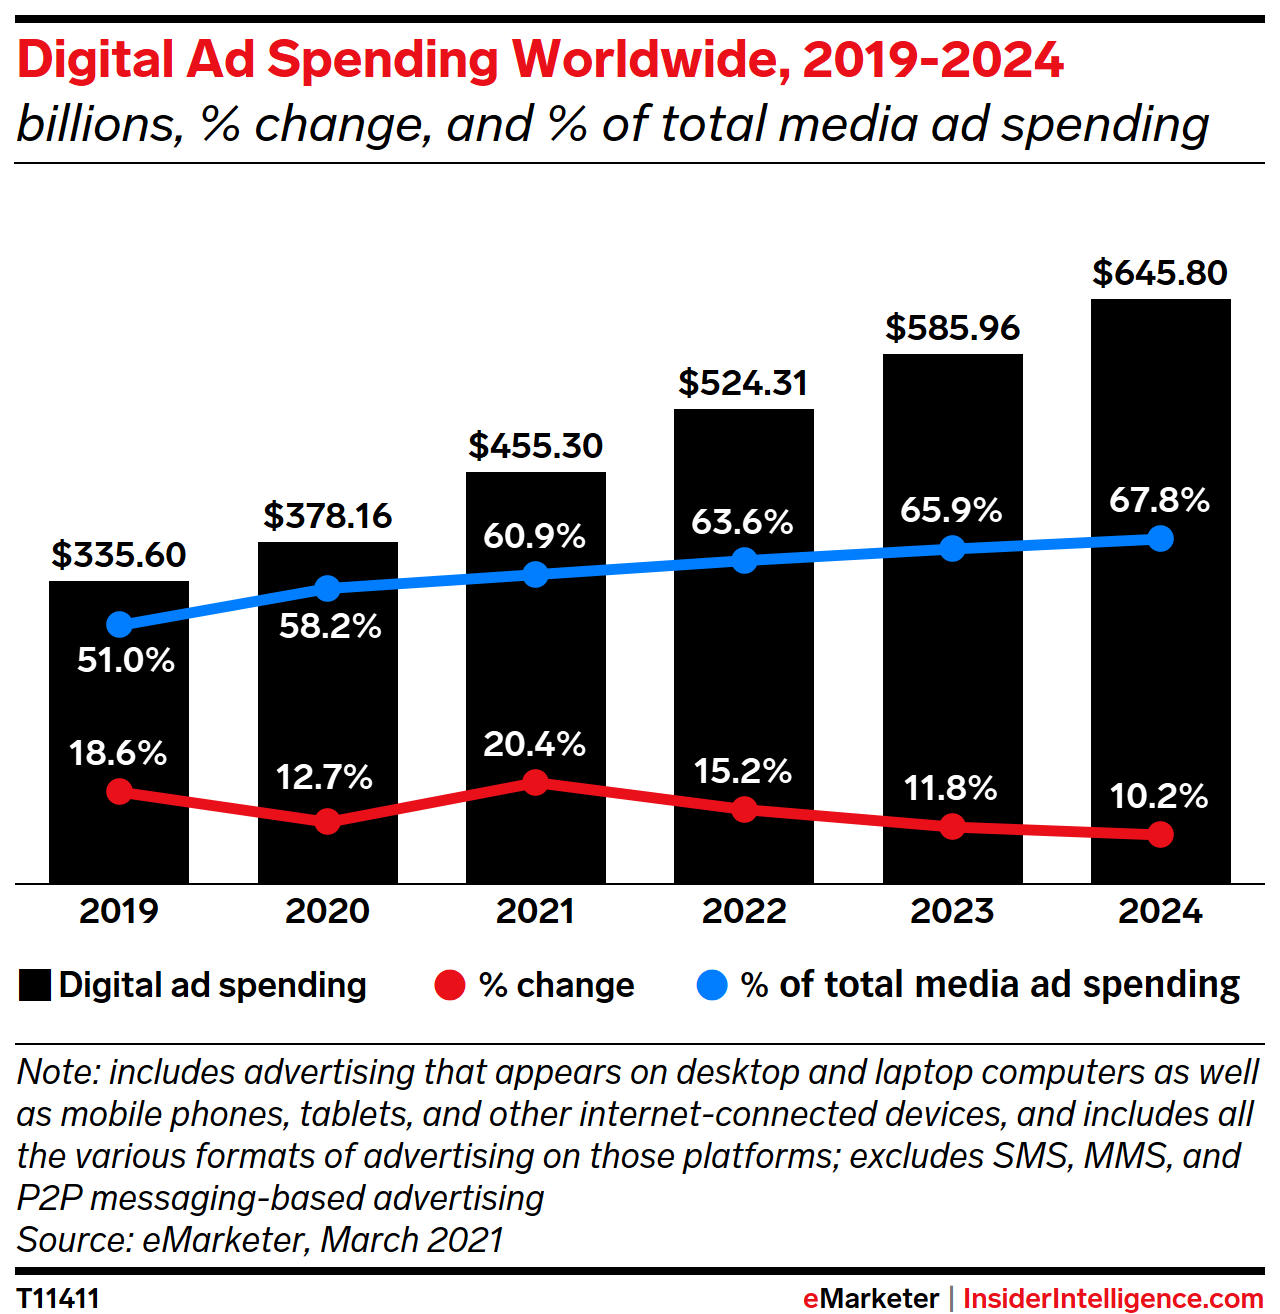 Digital Ad Spending Worldwide, 2019-2024 (billions, % change, and % of total media ad spending)